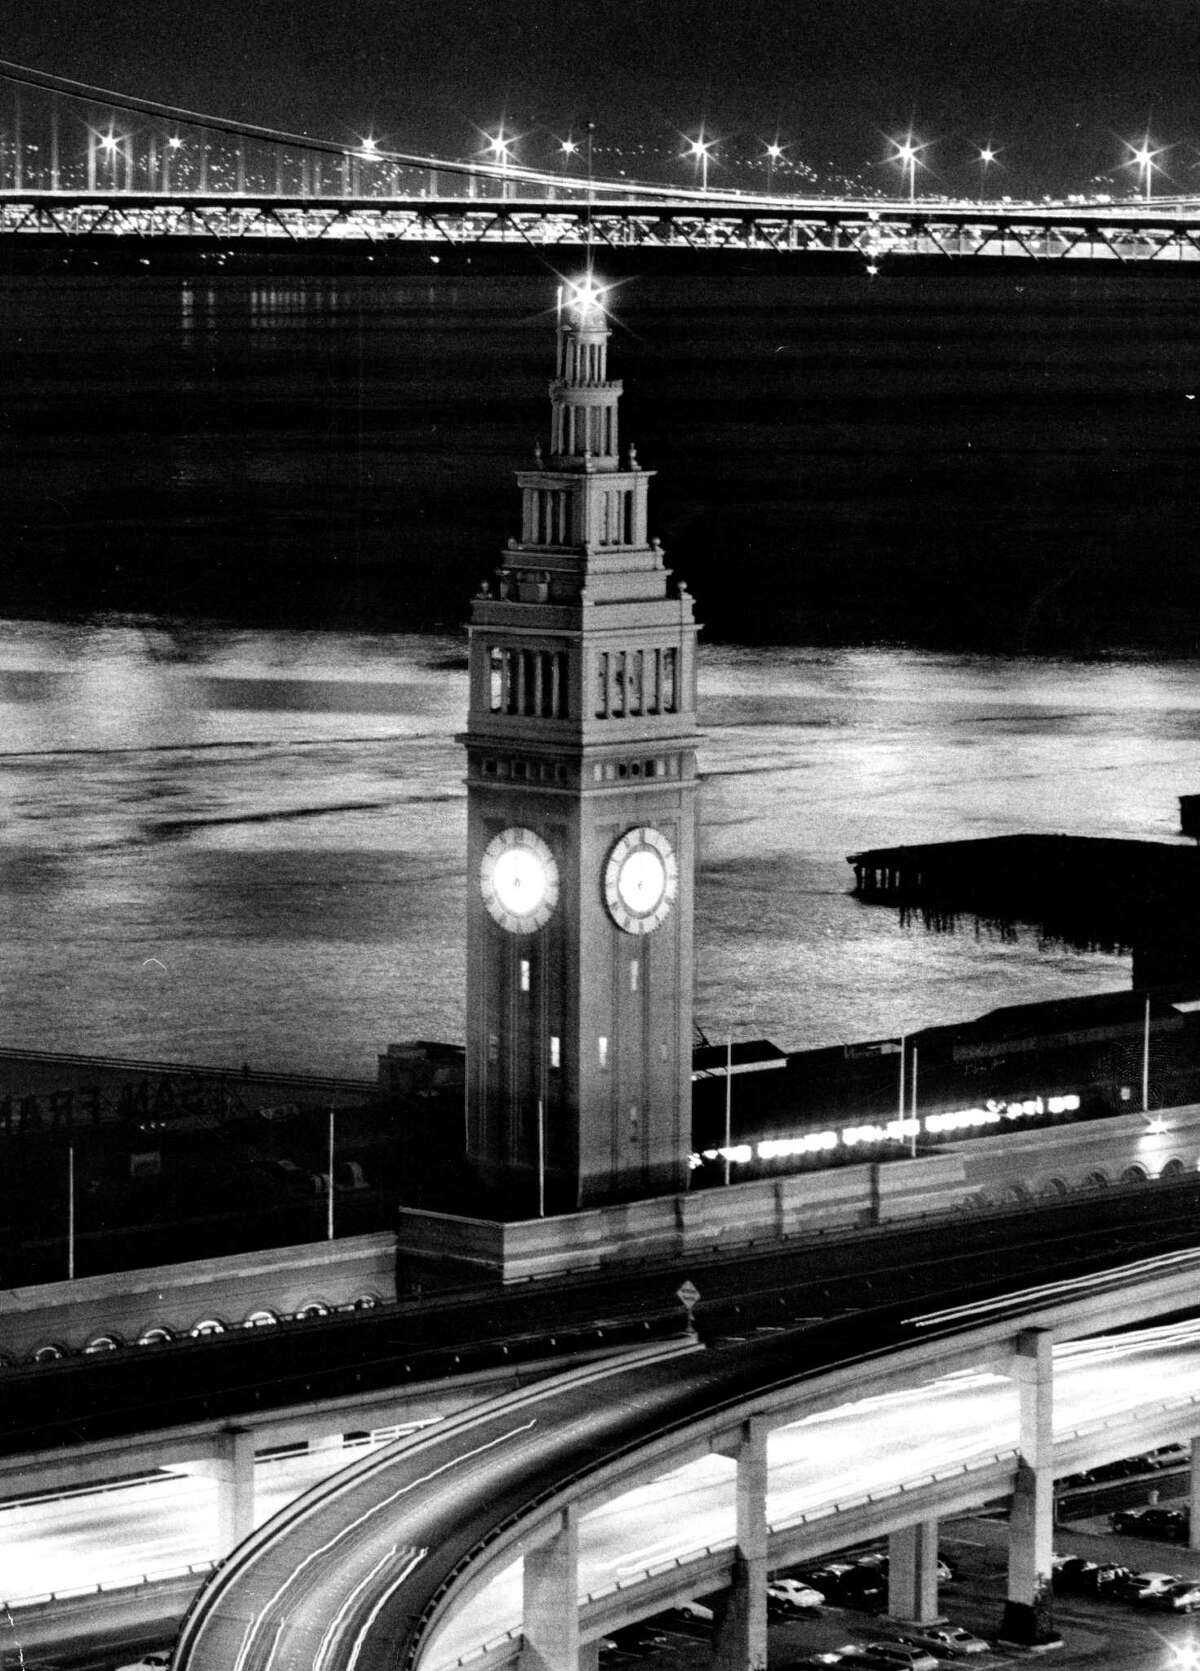 The Ferry Building rises above the old Embarcadero Freeway in the early 1970s. The freeway came down and the former transportation hub was reinvented as a destination for tourists and gourmets after 1989's Loma Prieta earthquake.